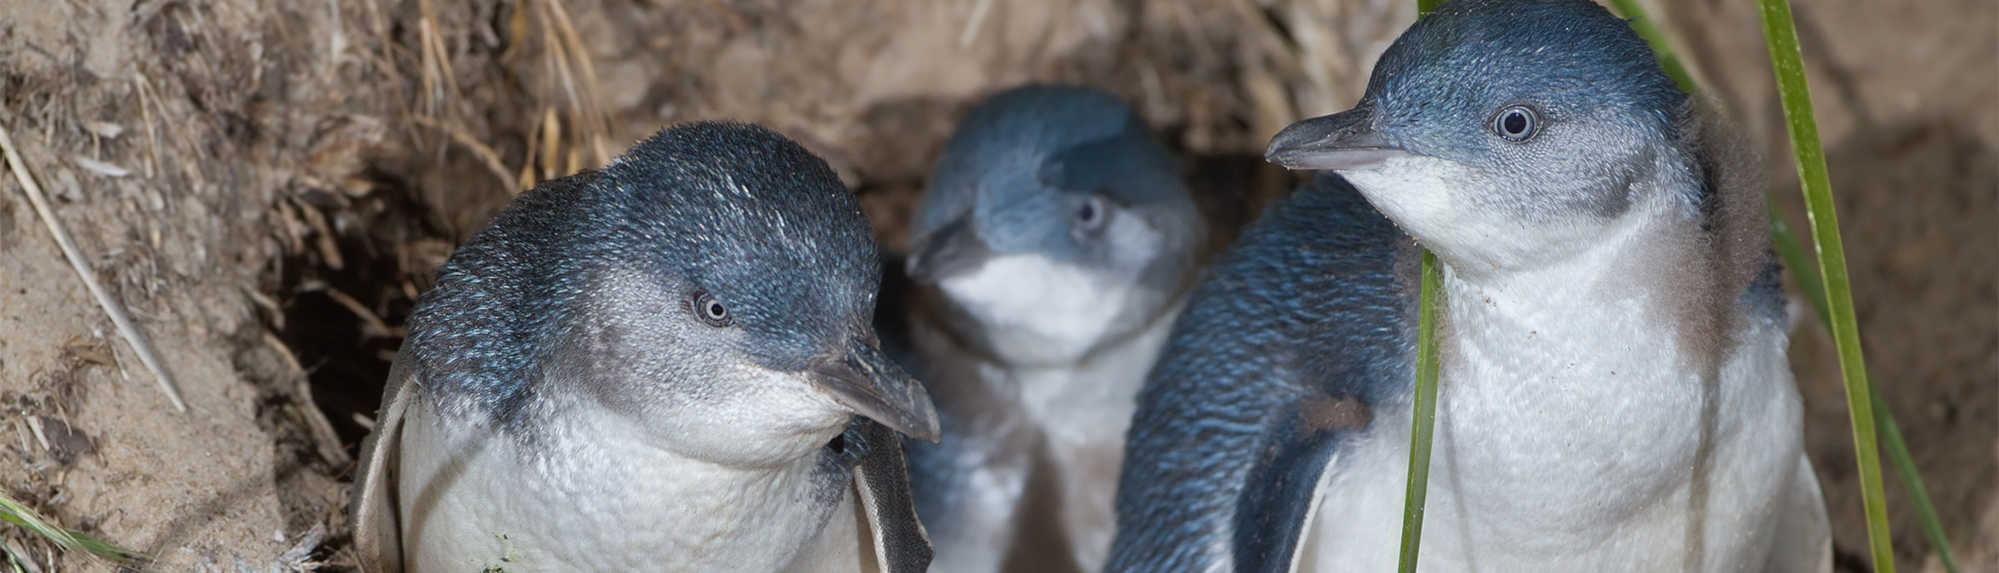 Can I Take Photos of the Penguins on Phillip Island?